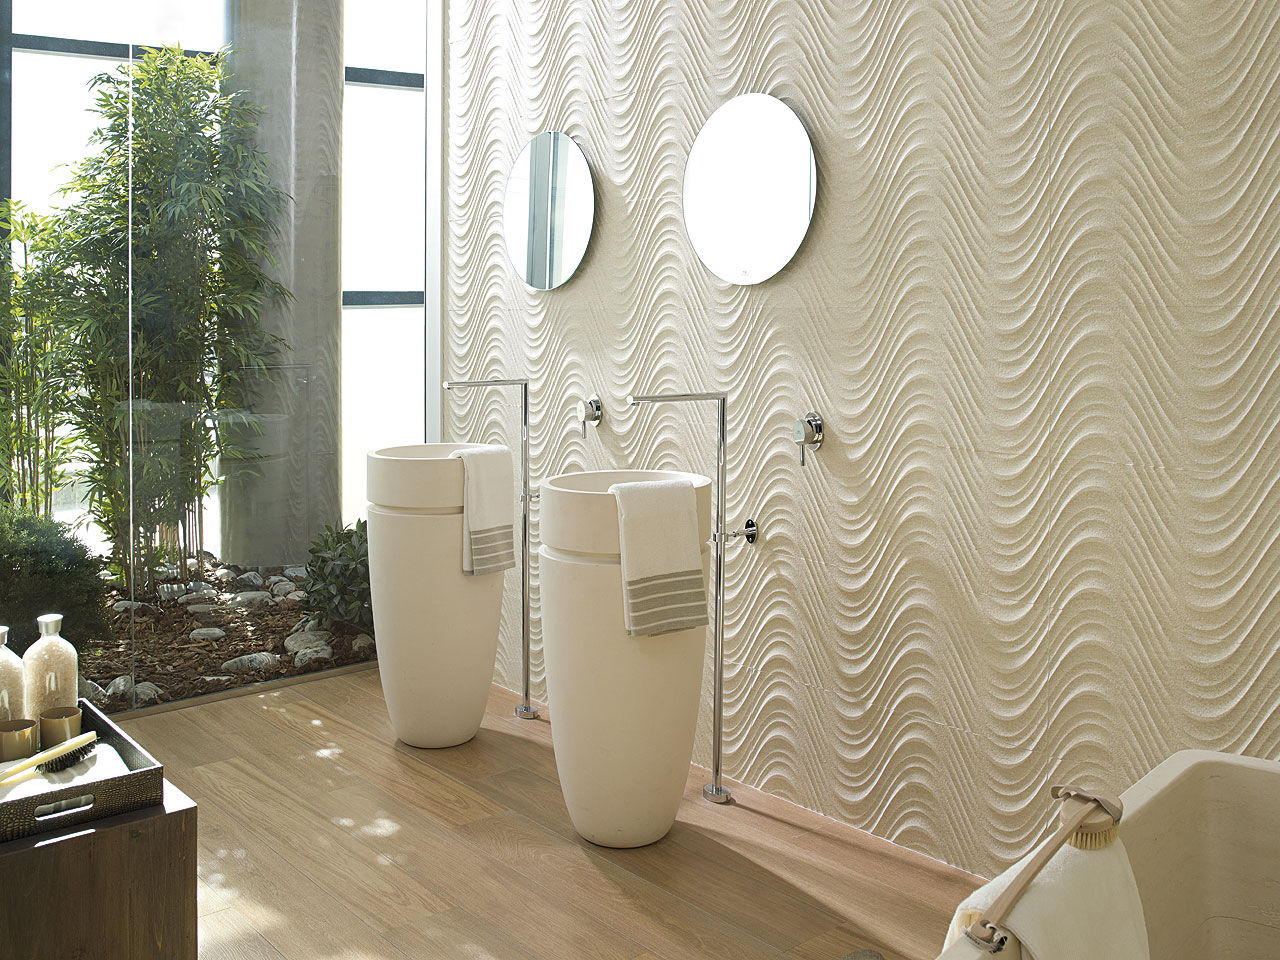 indoor-tile-bathrooms-wall-ceramic-12-6401629